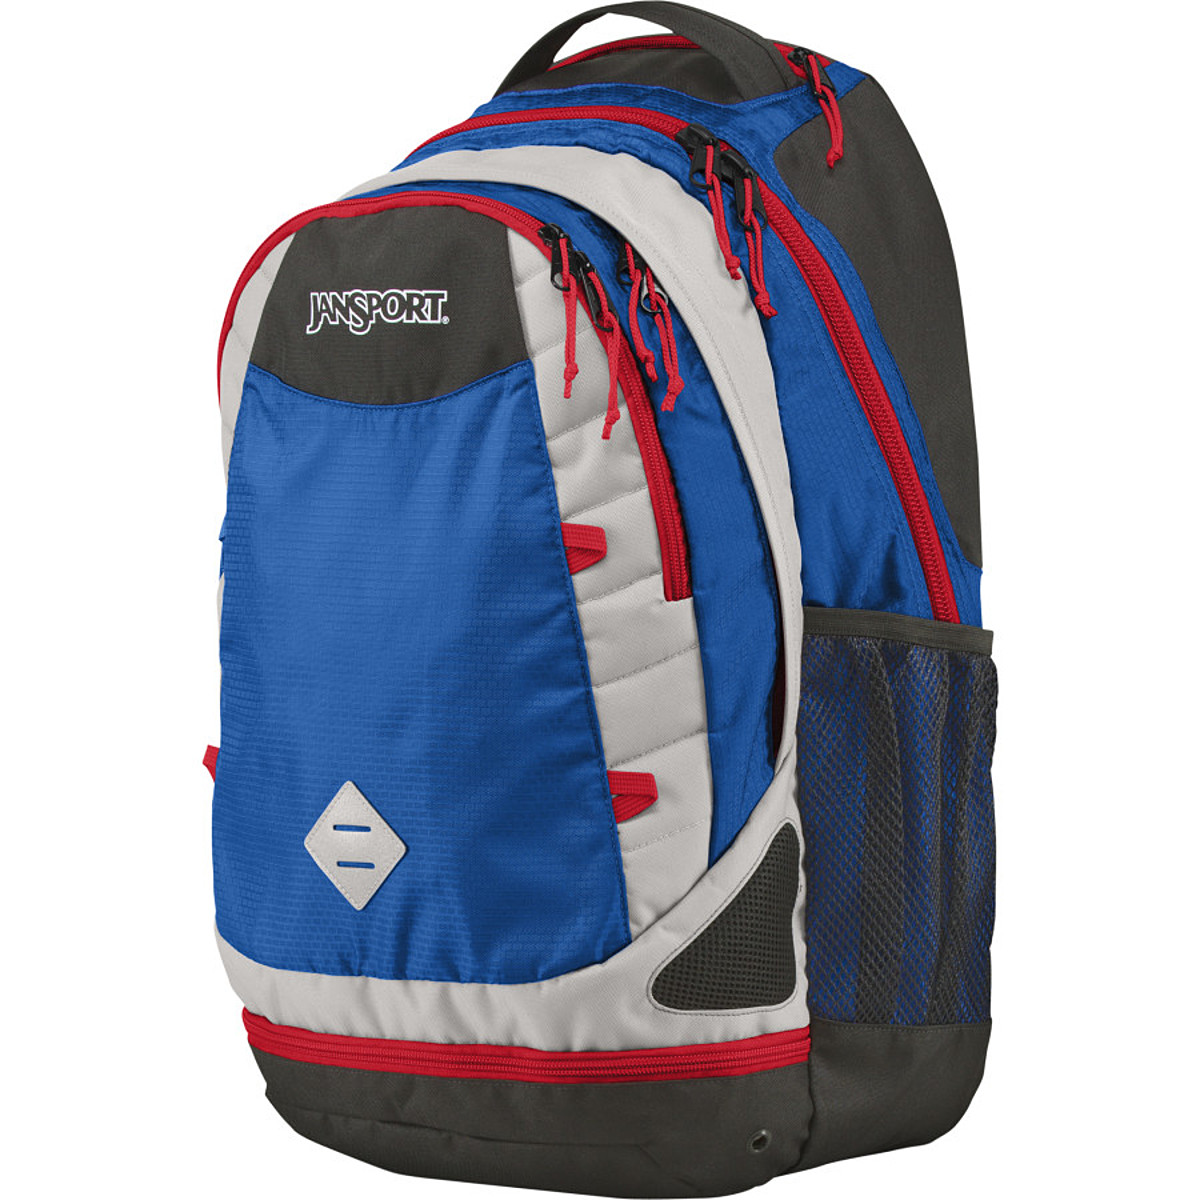 JanSport Boost